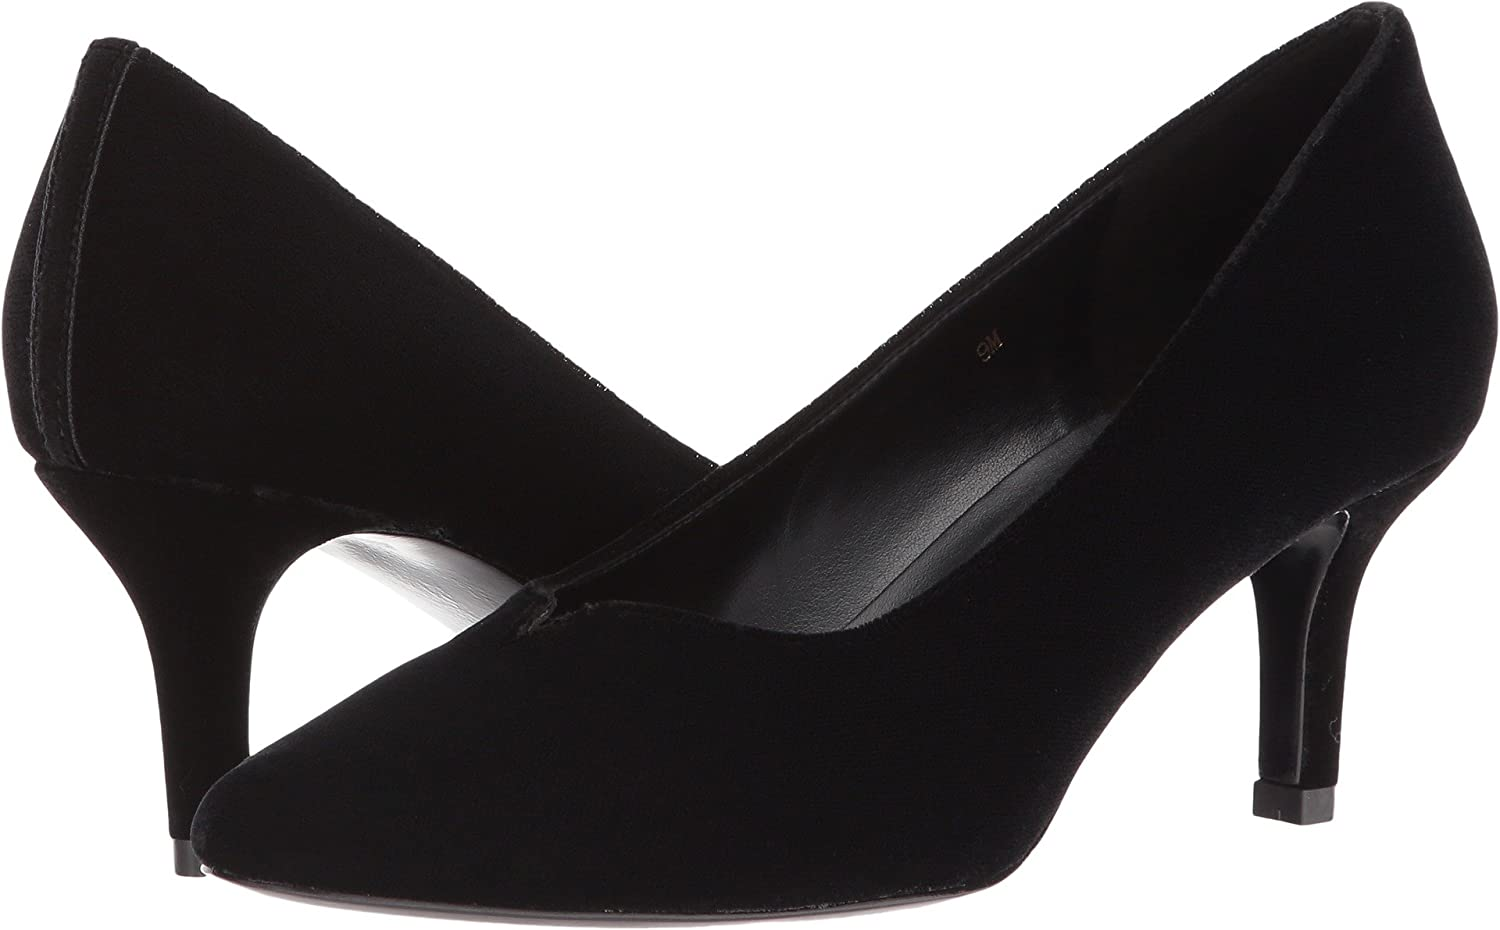 VANELi Women's Linden Pumps Shoes B01MS1RYHN 9.5 AA US|Black Velvet